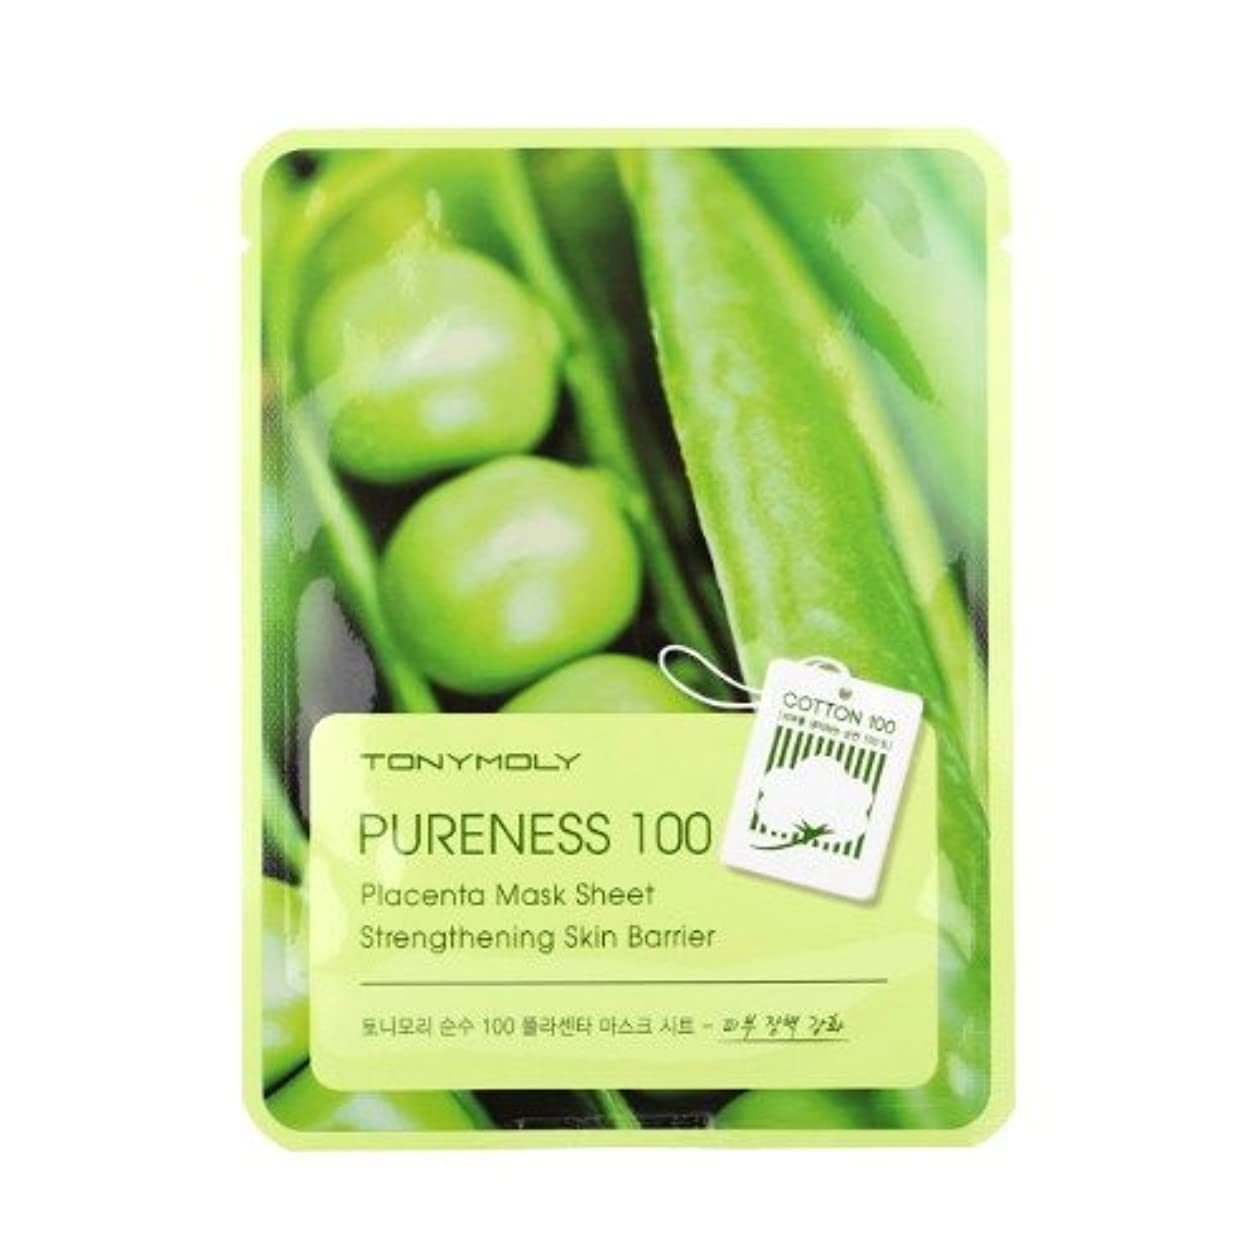 誓うレルムリーダーシップ(3 Pack) TONYMOLY Pureness 100 Placenta Mask Sheet Strengthening Skin Barrier (並行輸入品)